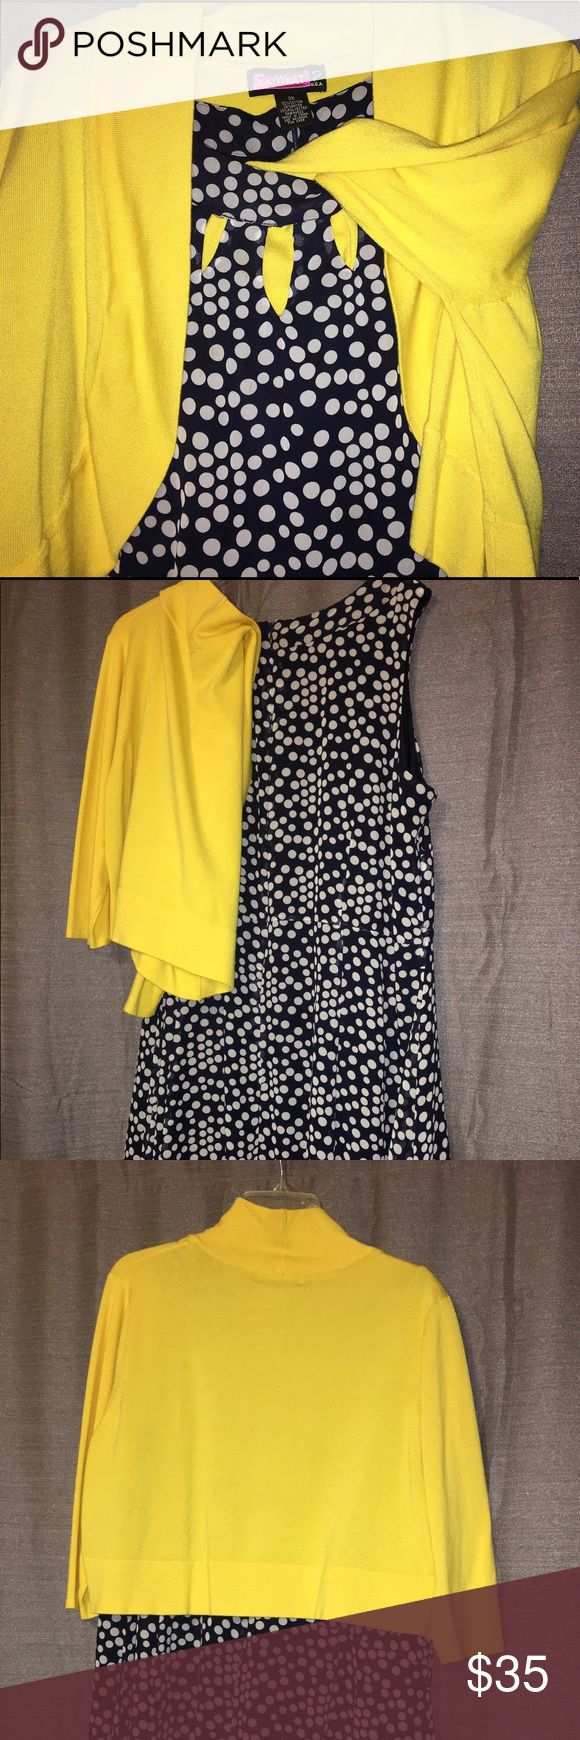 Yellow cropped cardigan and Navy dot dress Lemon yellow cropped cardigan (3x) and navy blue polka dot dress (22W). Worn once to a wedding. Pet free smoke free home. Dresses